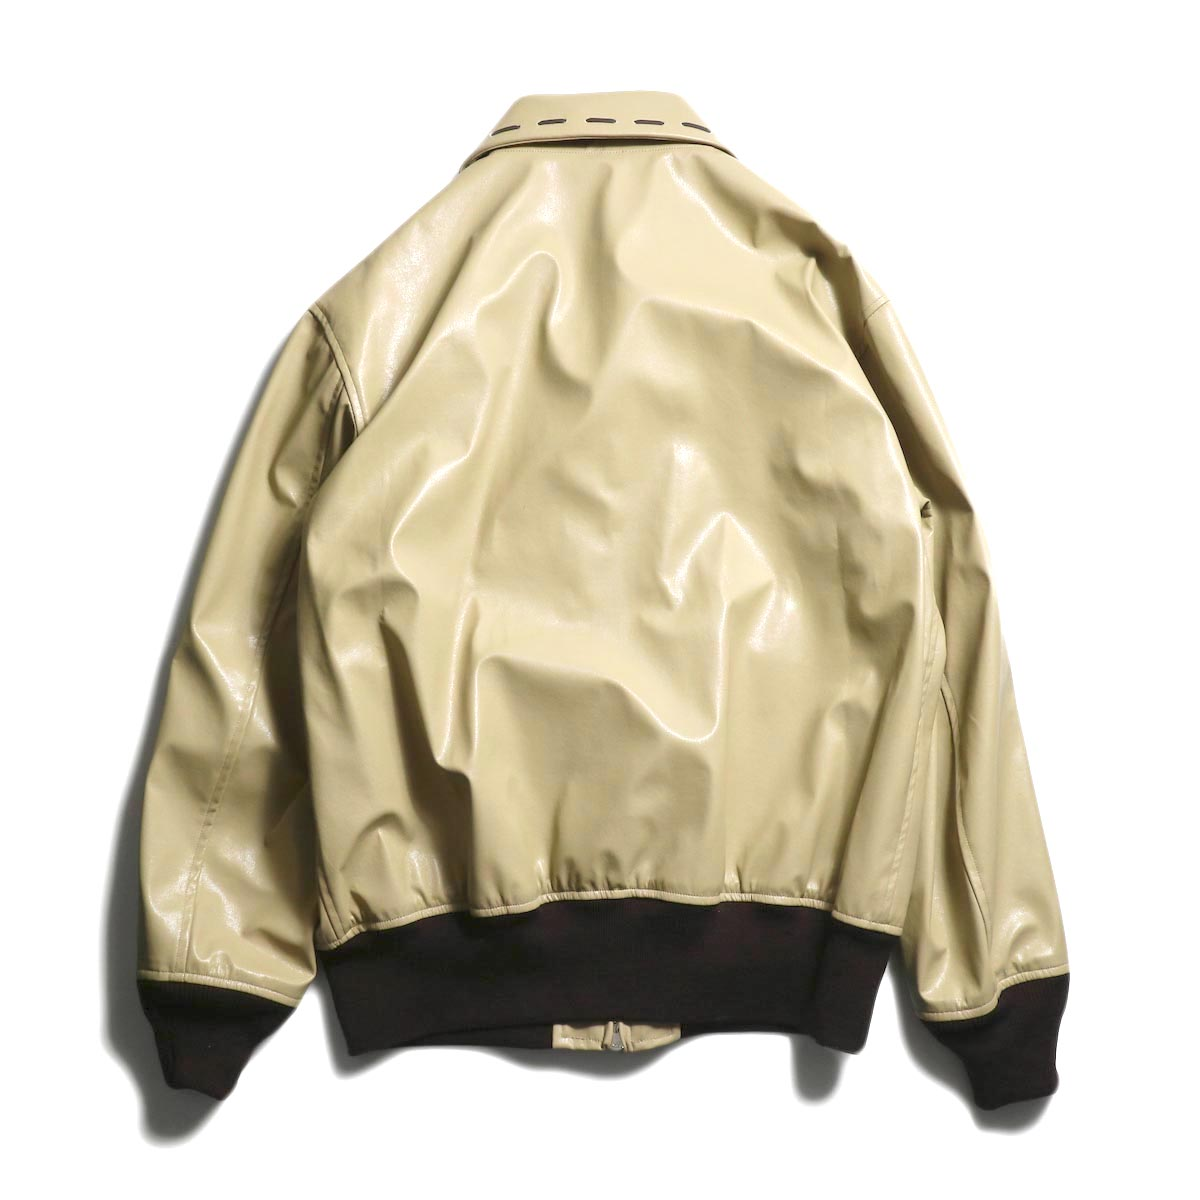 NEEDLES / G-1 Jacket -Synthetic Leather 背面